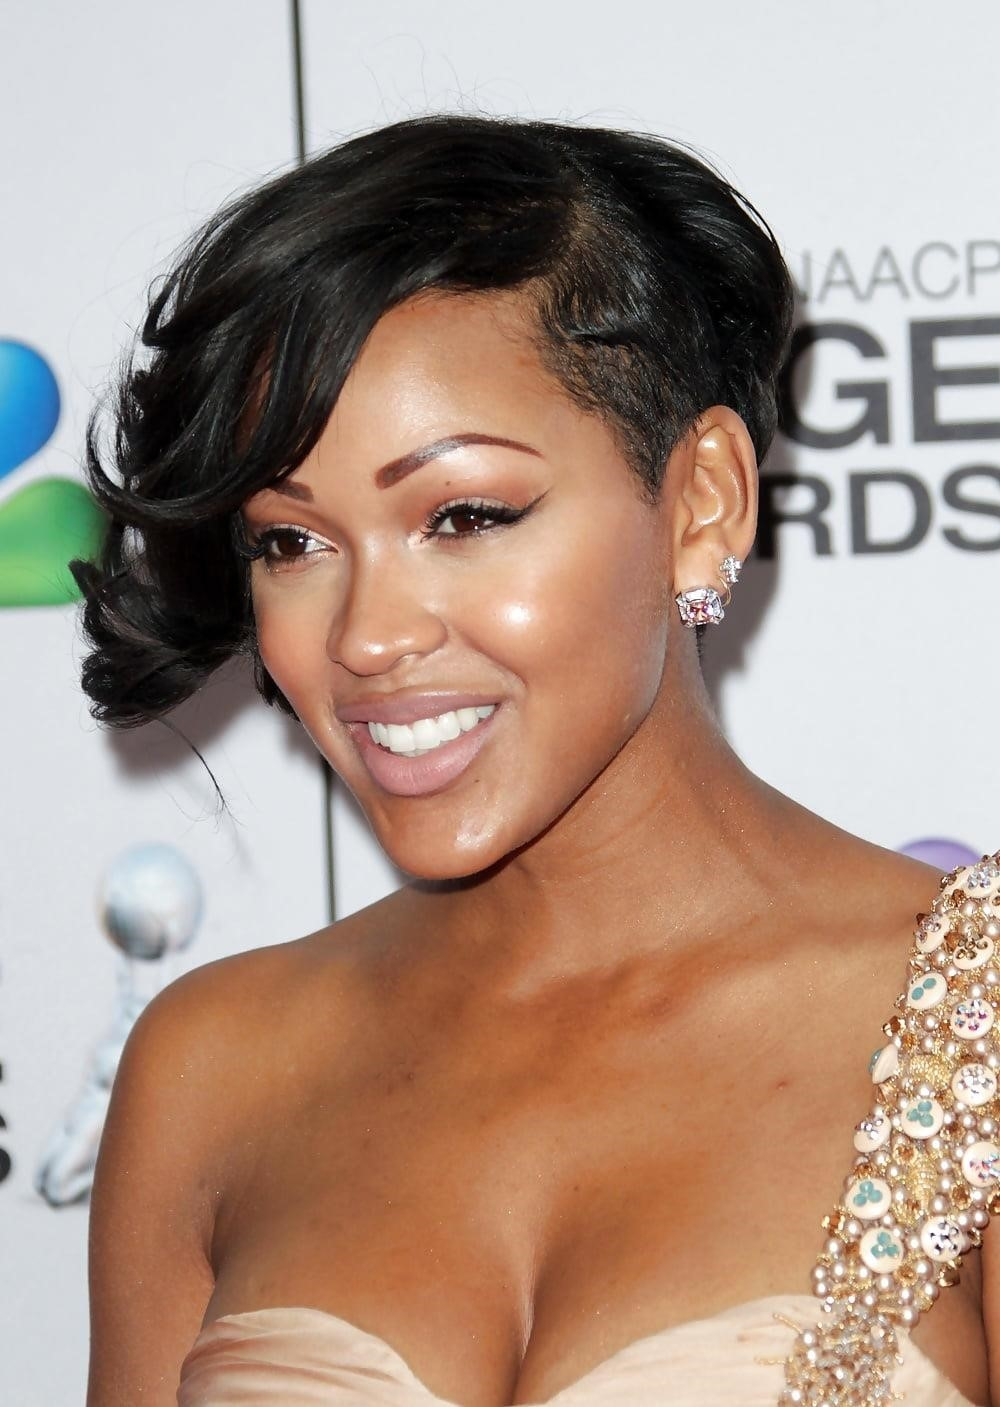 Meagan good nude pictures-4527